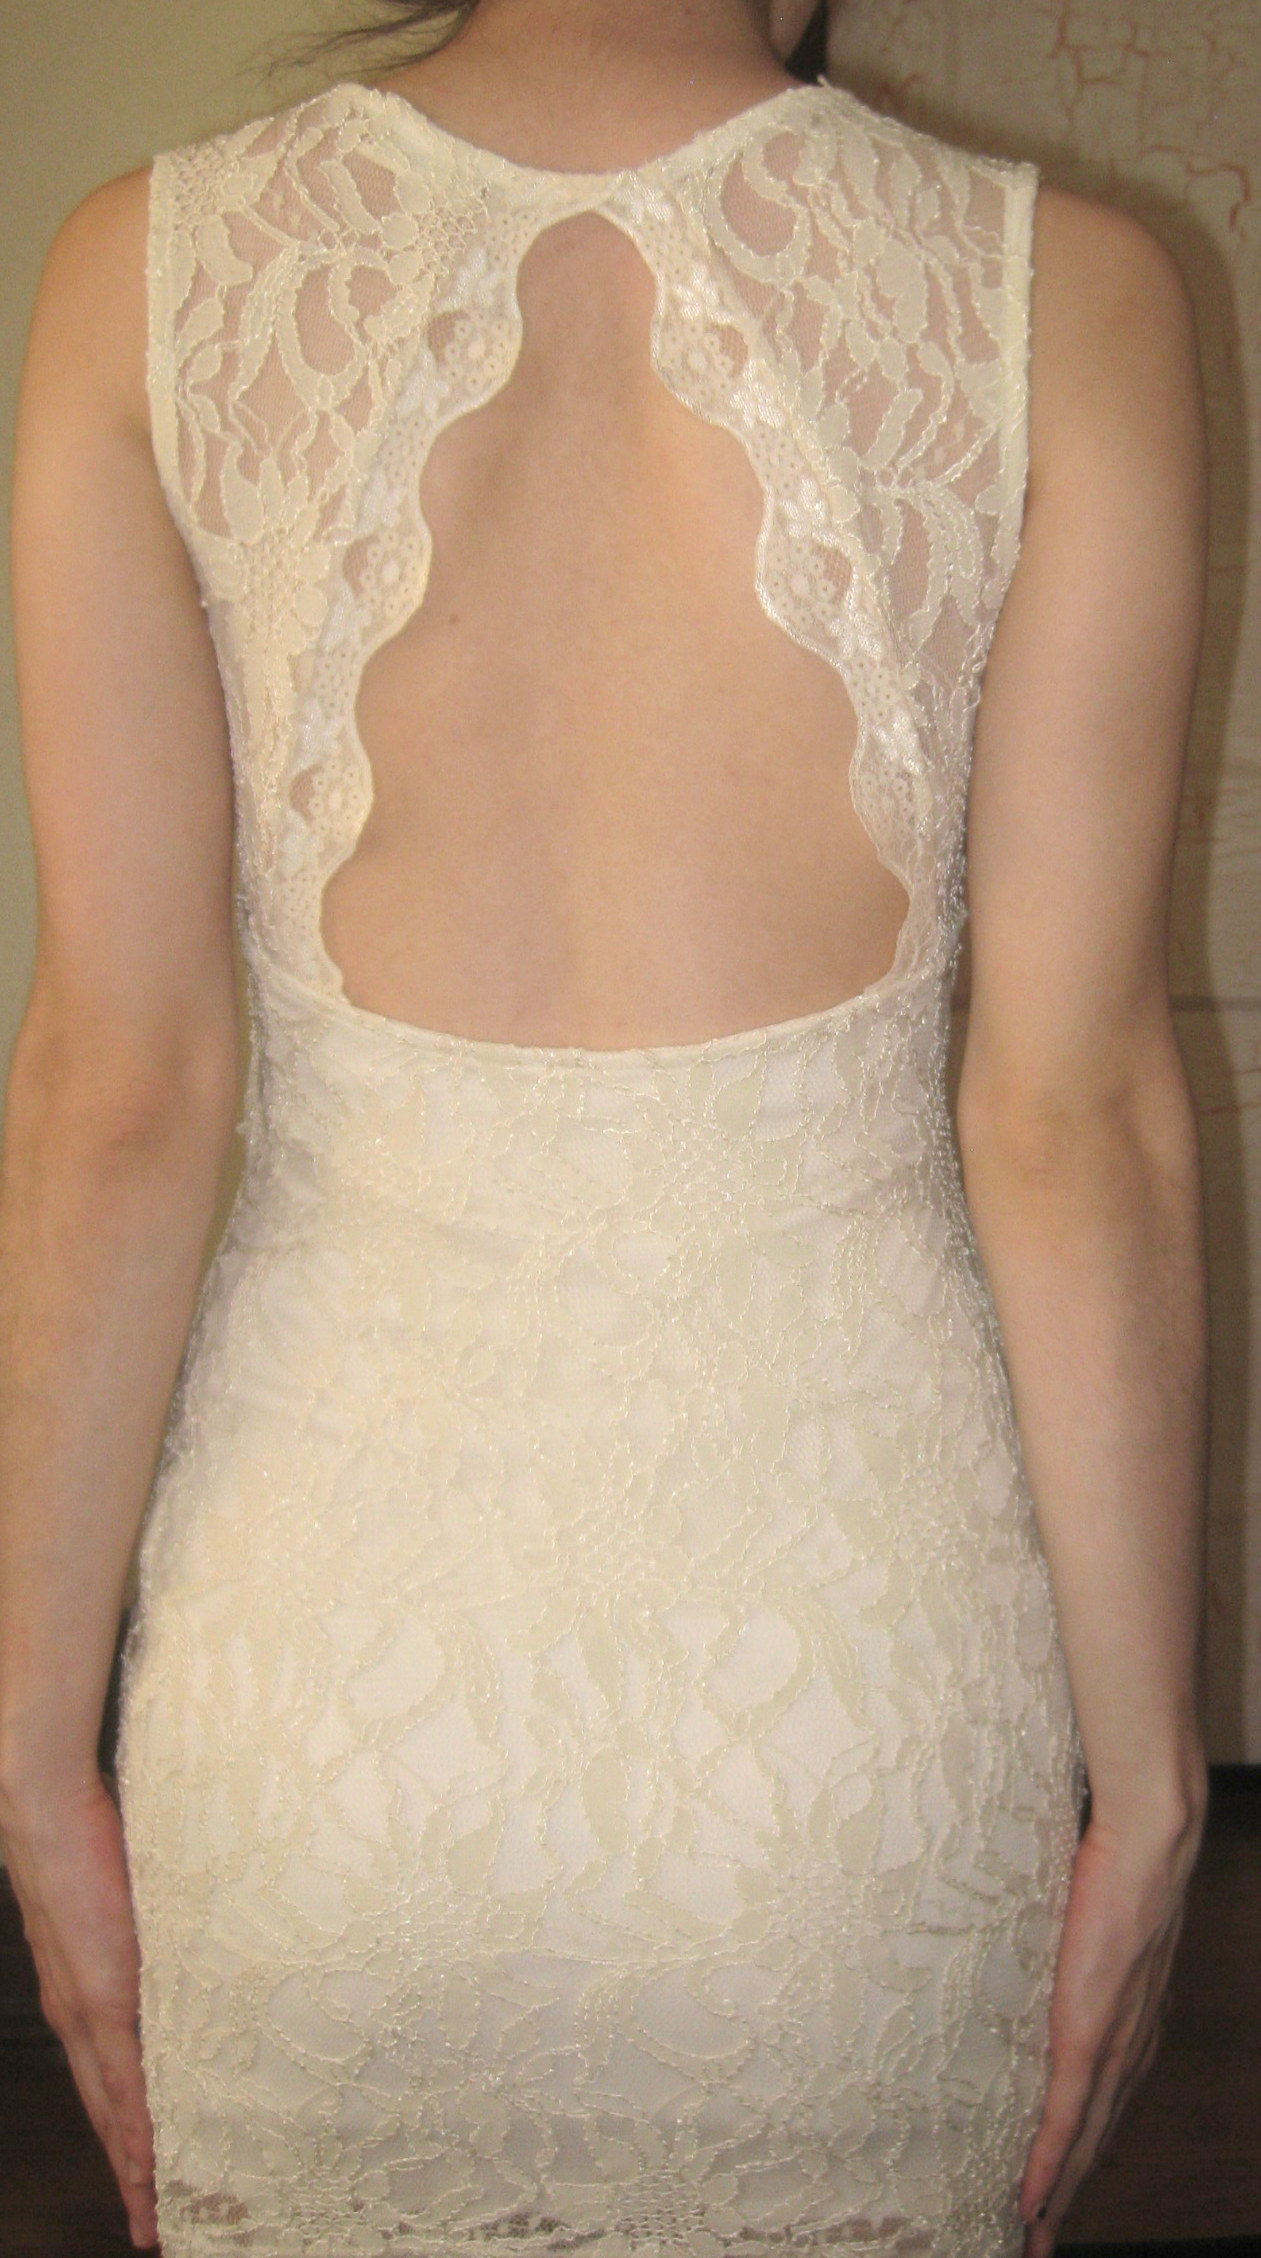 Tobi white lace cut out back dress size s from nightmere clothing on storenvy